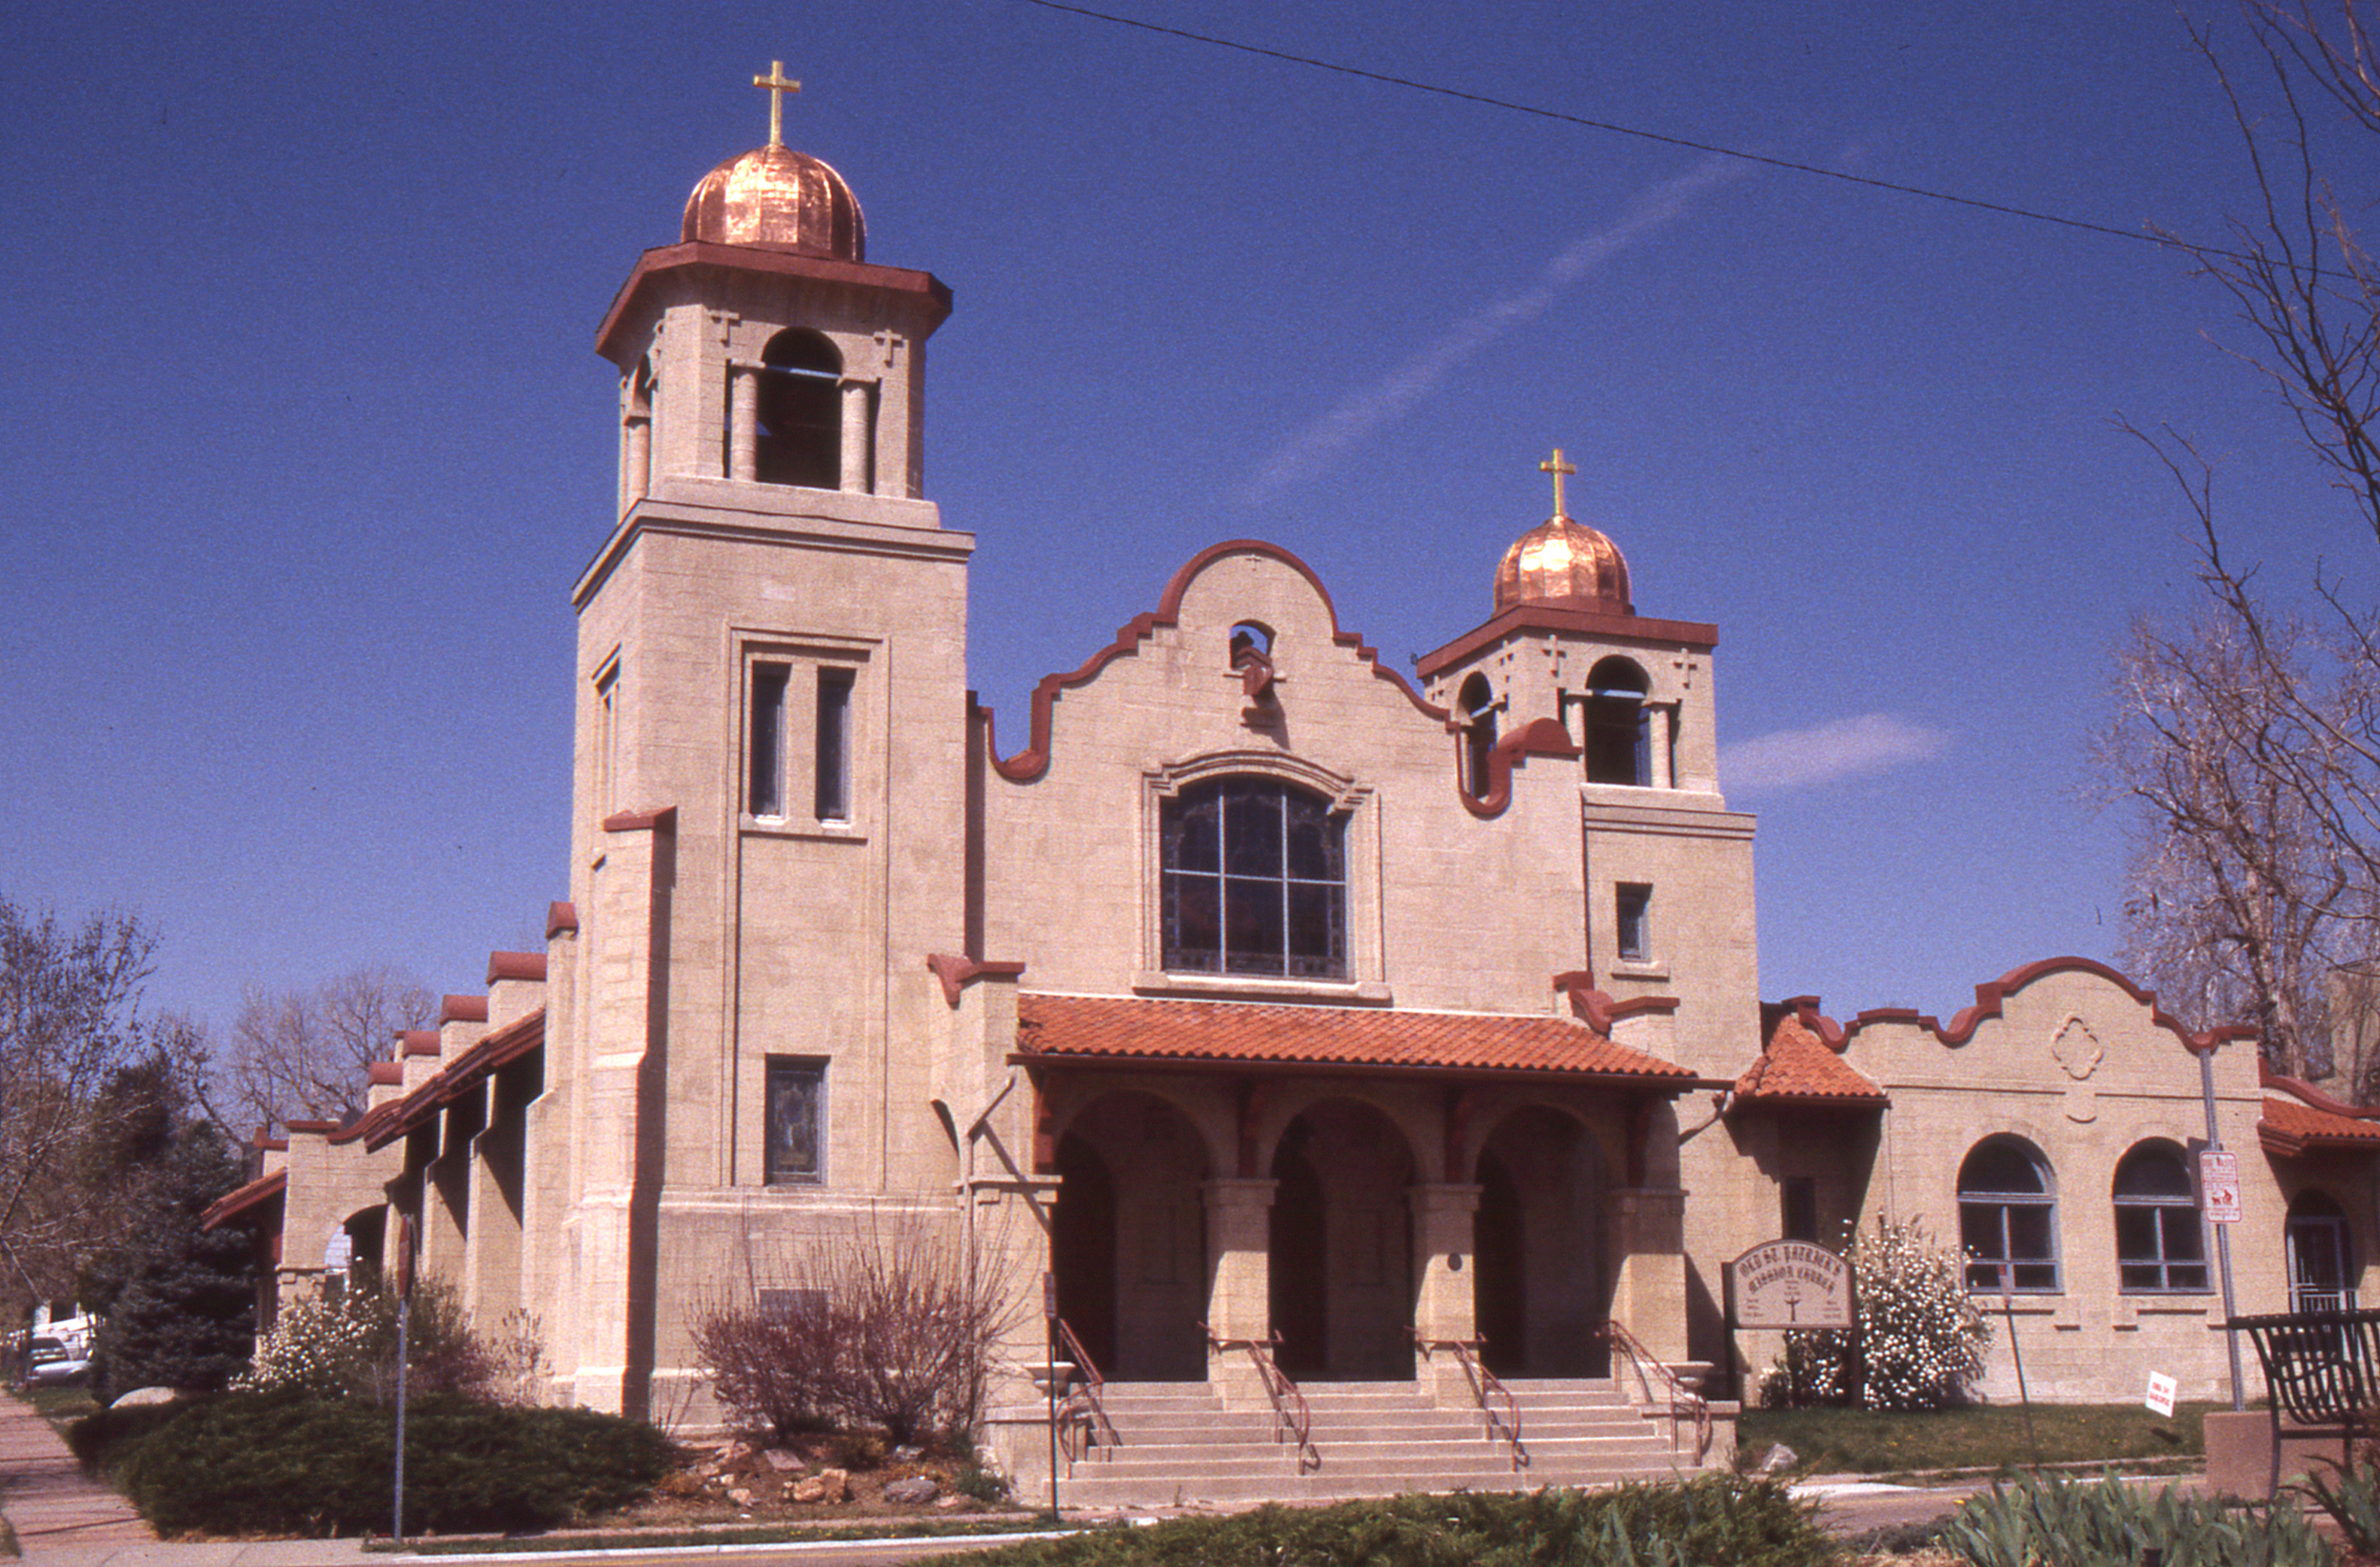 Color photograph of St. Patrick's Mission Church in northwest Denver.